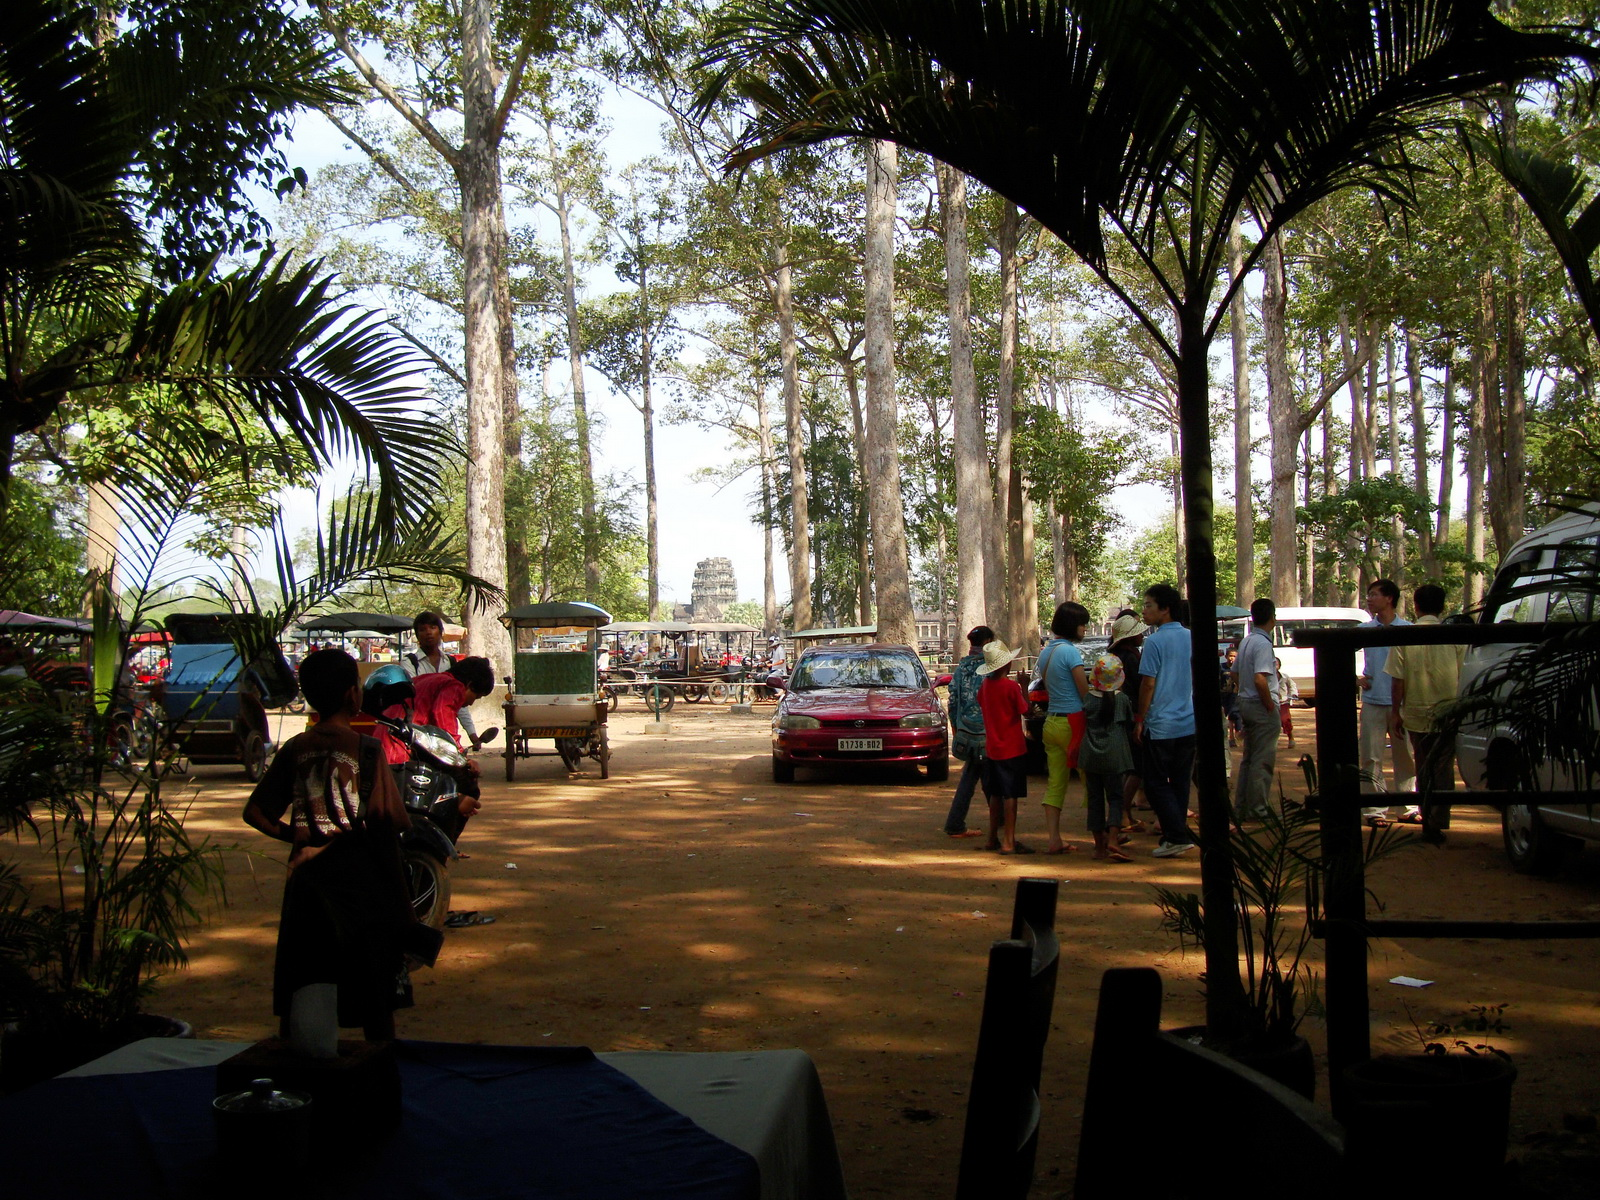 Angkor Wat Western carpark and restaurant area 01